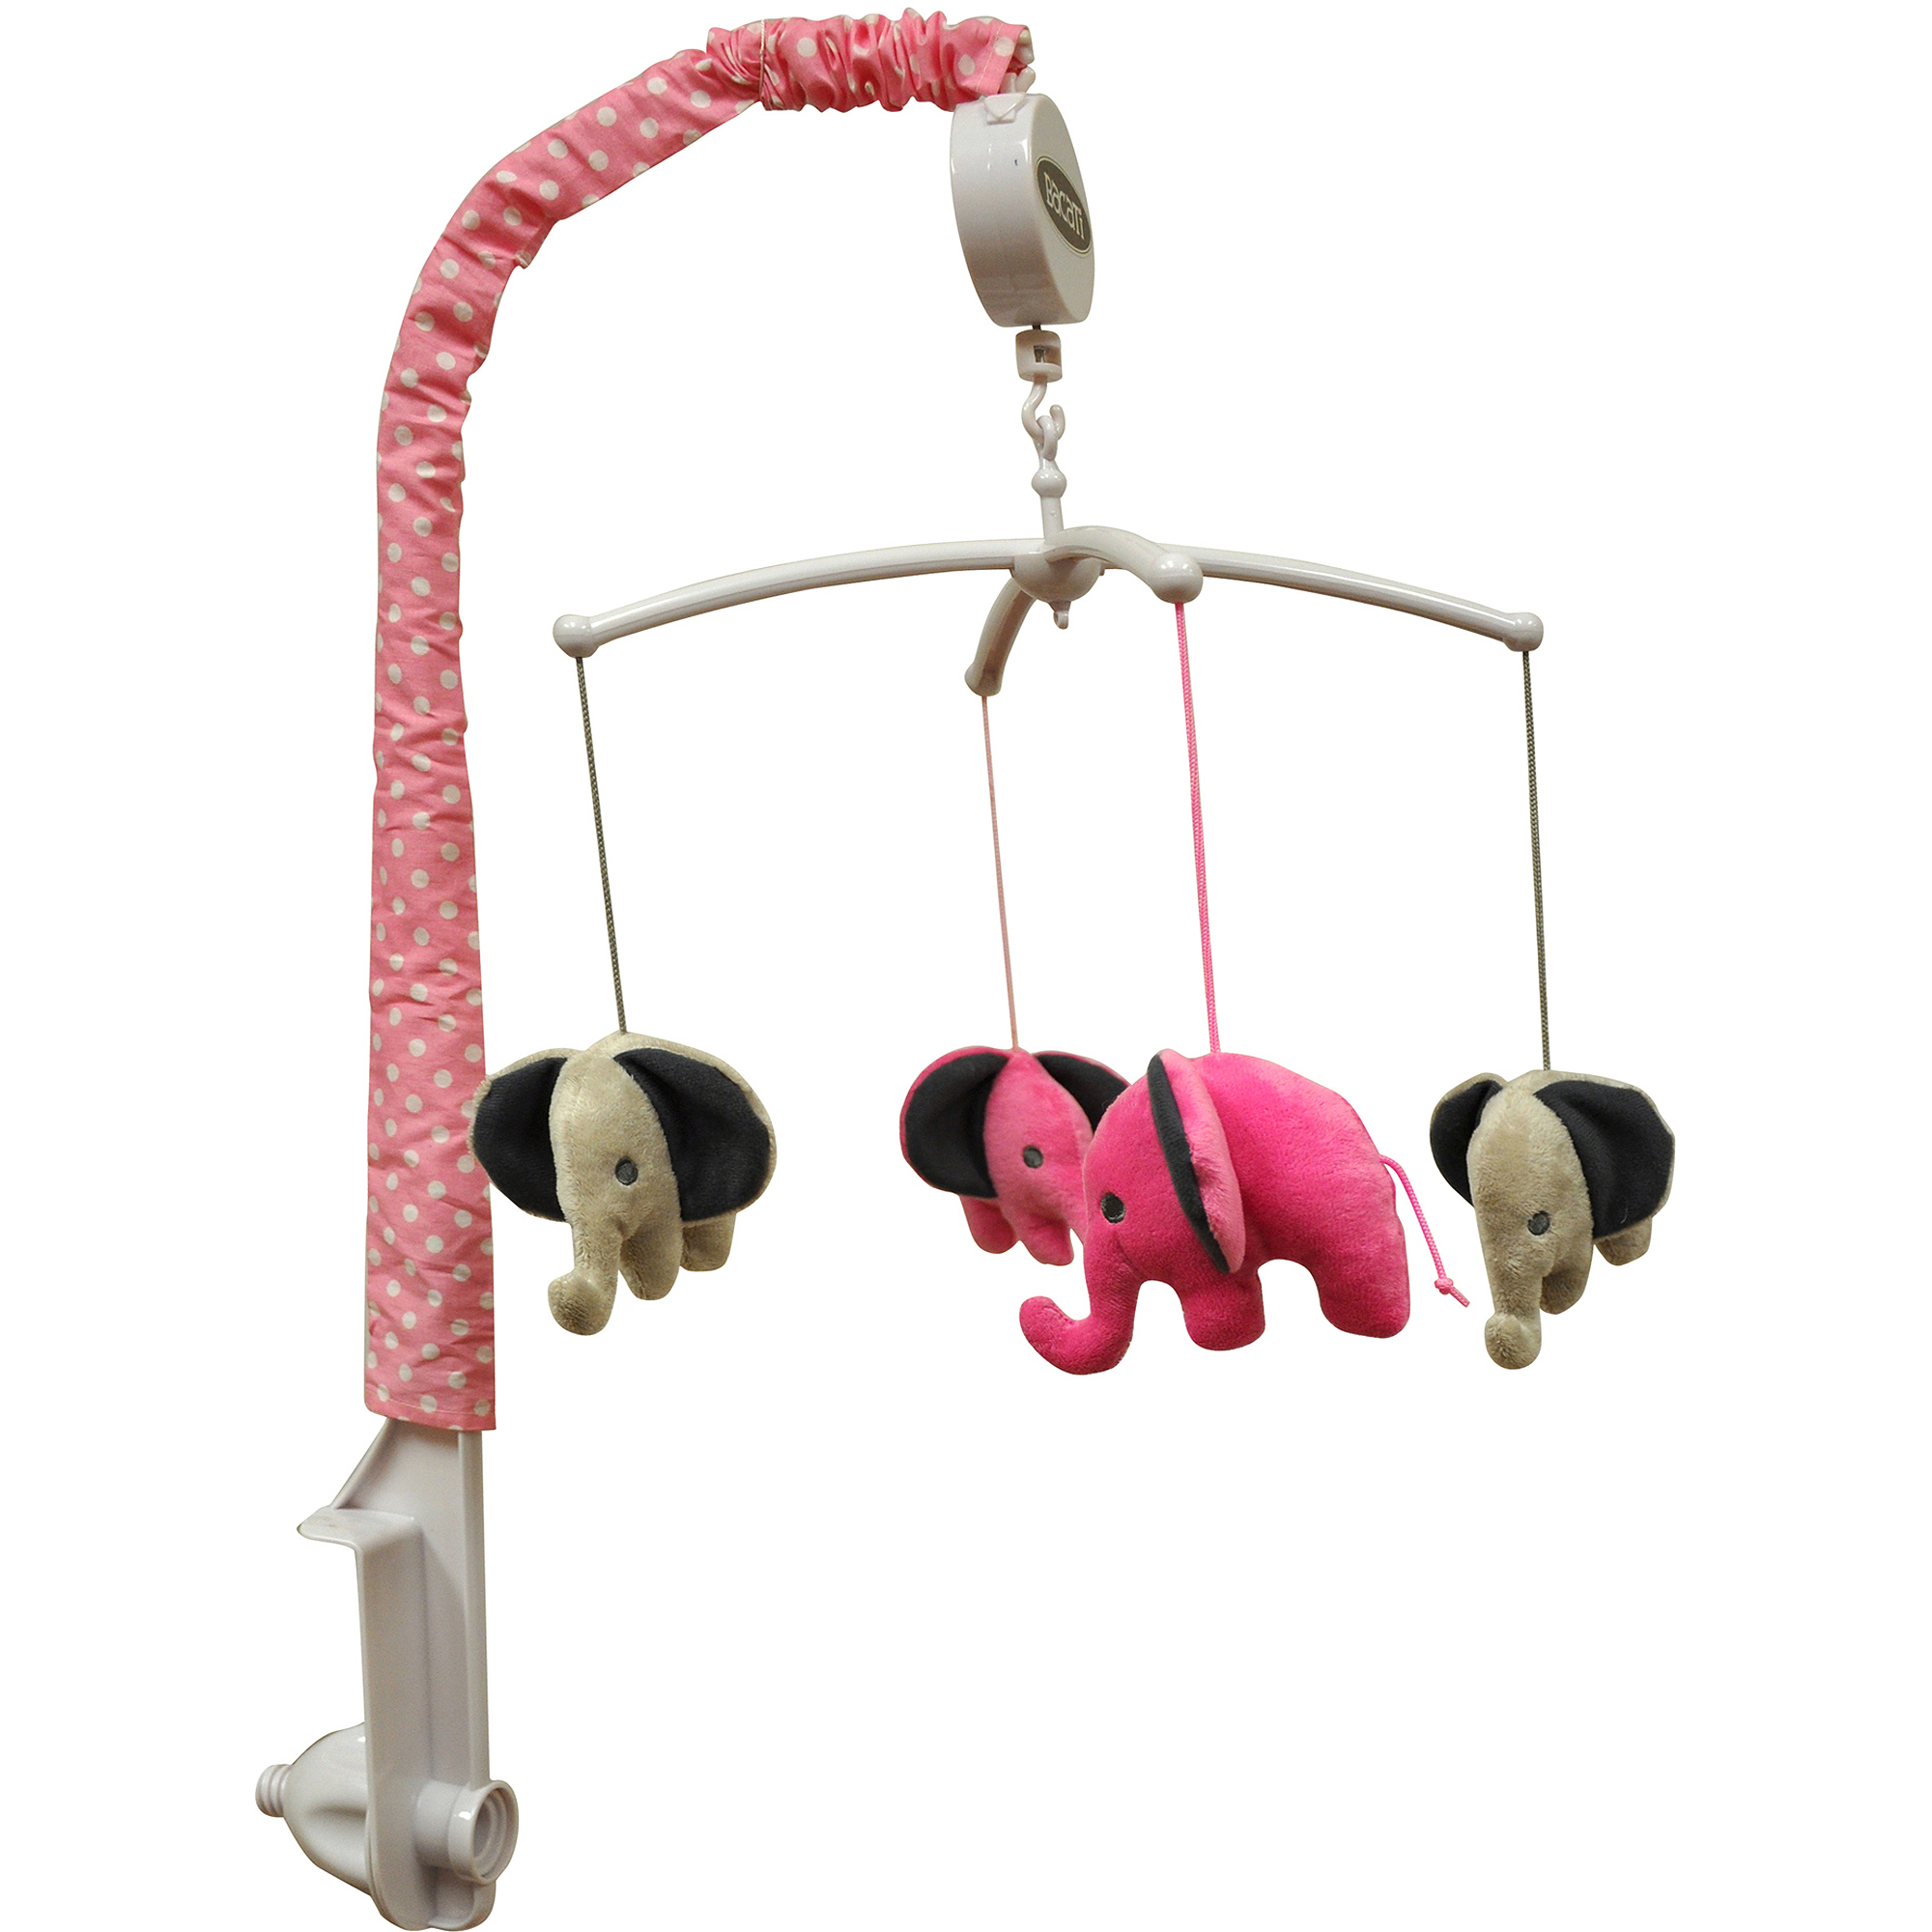 Bacati - Elephants Musical Mobile with Hanging Toys, Pink/Gray